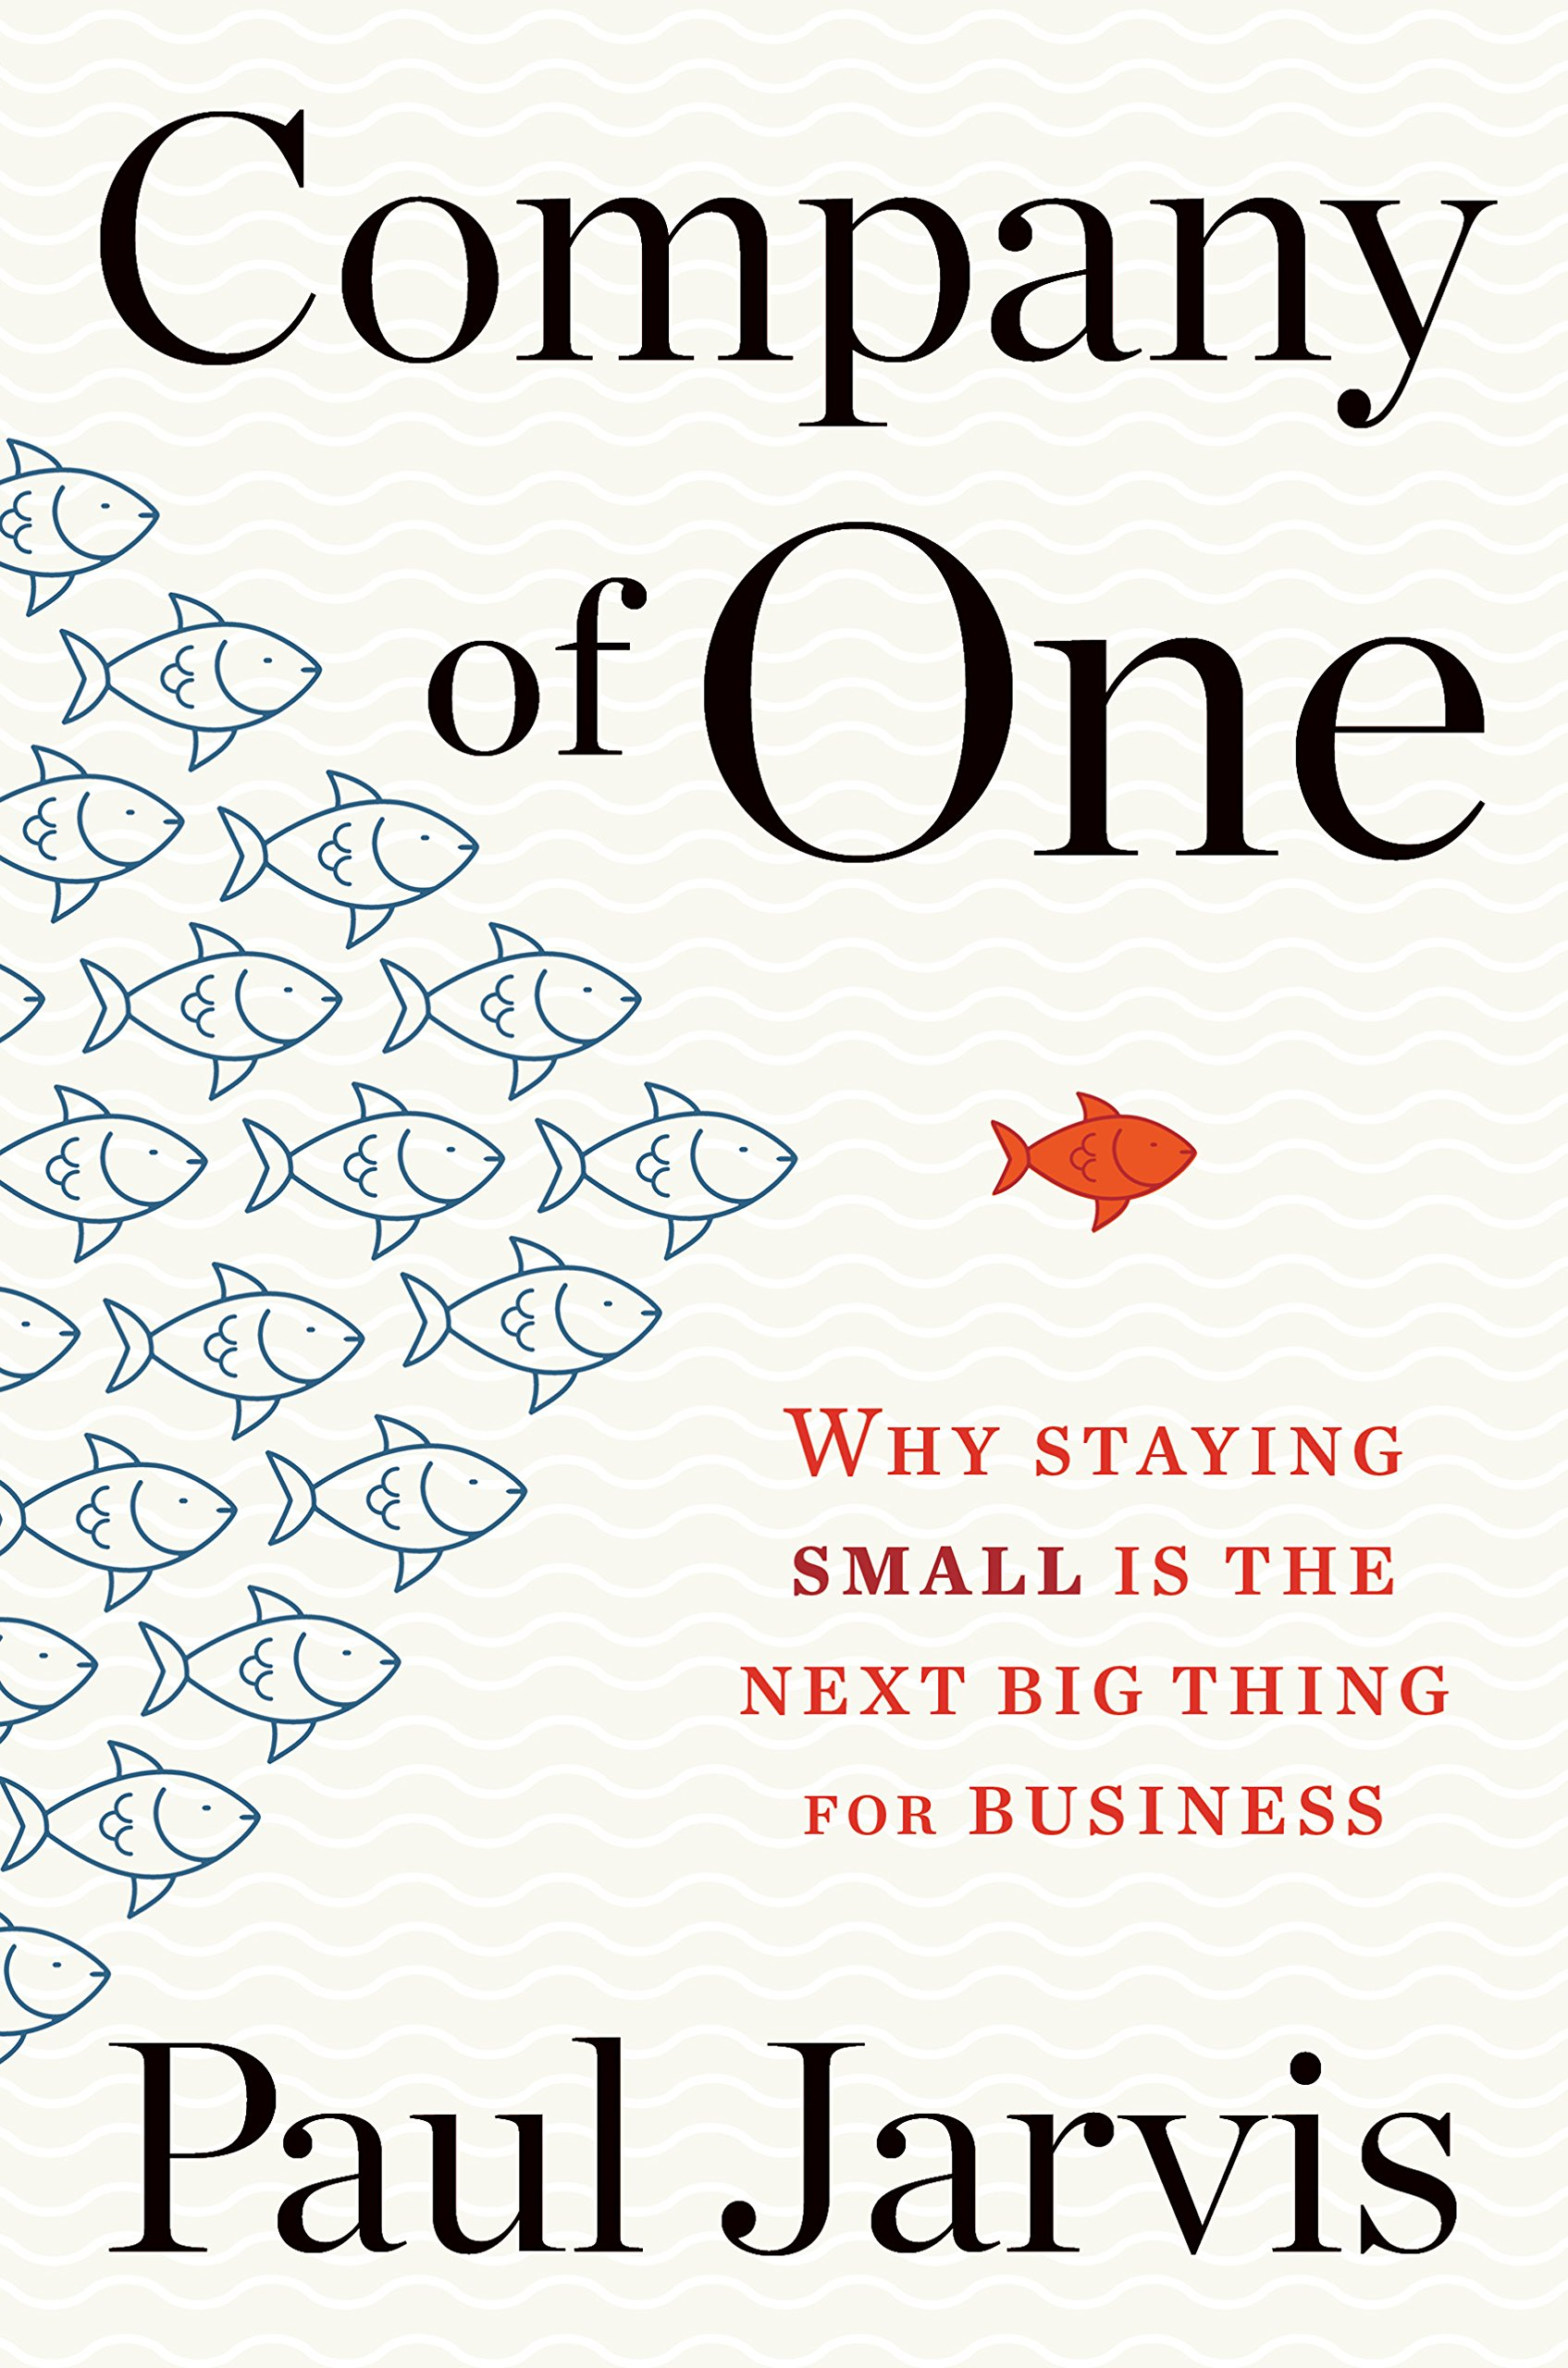 cover image of book titled Company of One